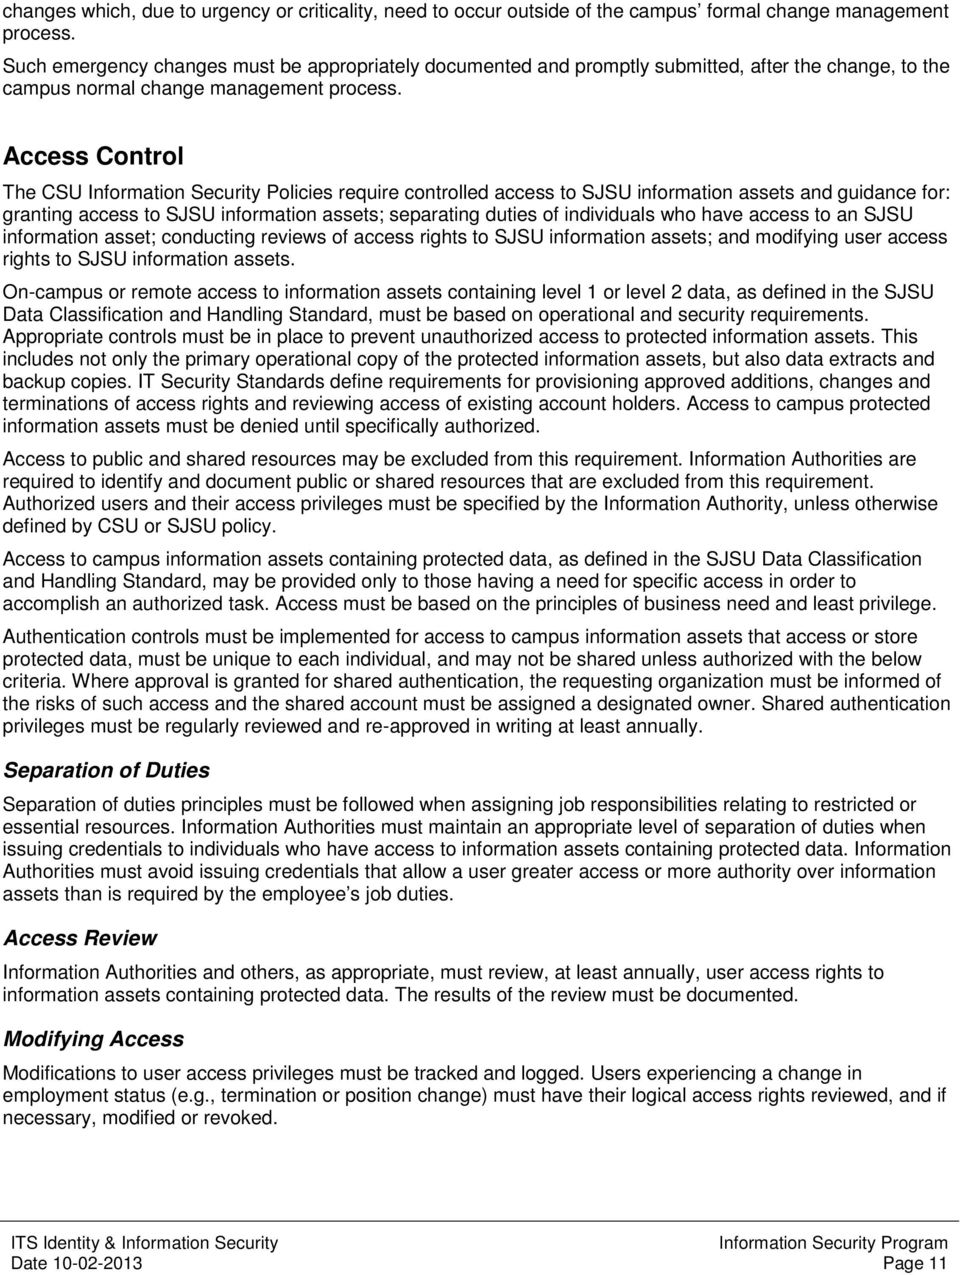 Access Control The CSU Information Security Policies require controlled access to SJSU information assets and guidance for: granting access to SJSU information assets; separating duties of